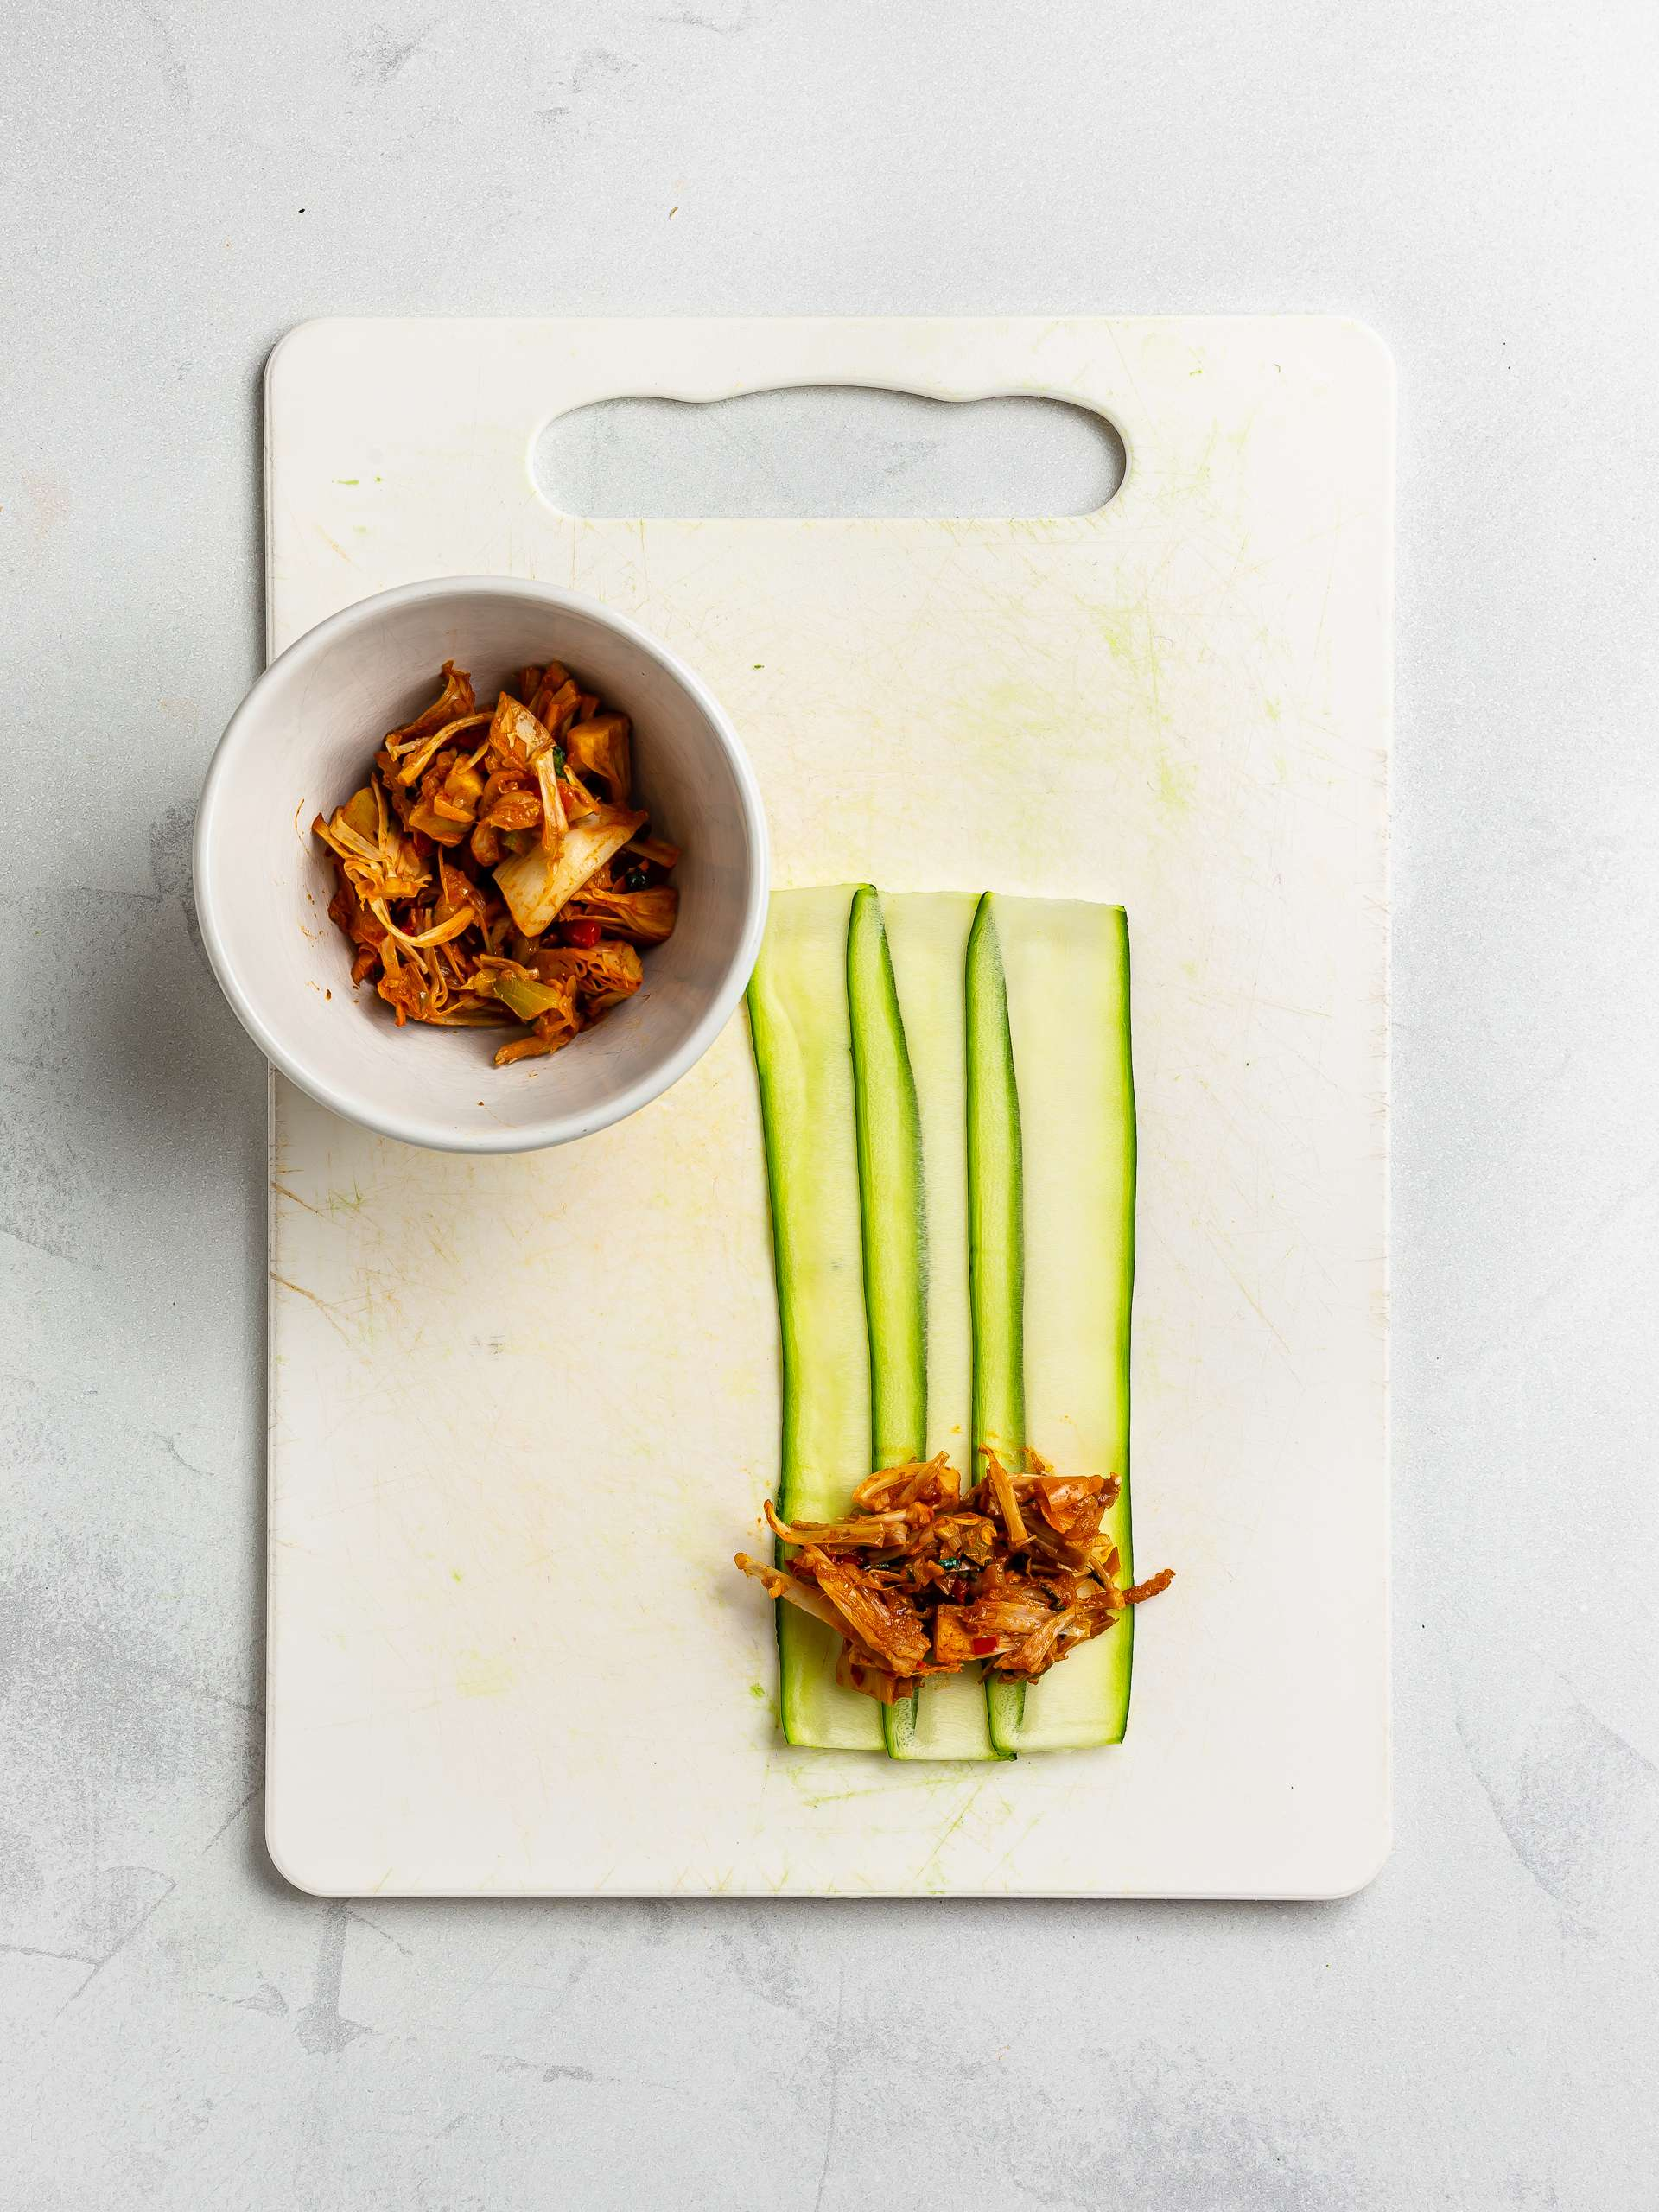 courgette wraps with jackfruit filling